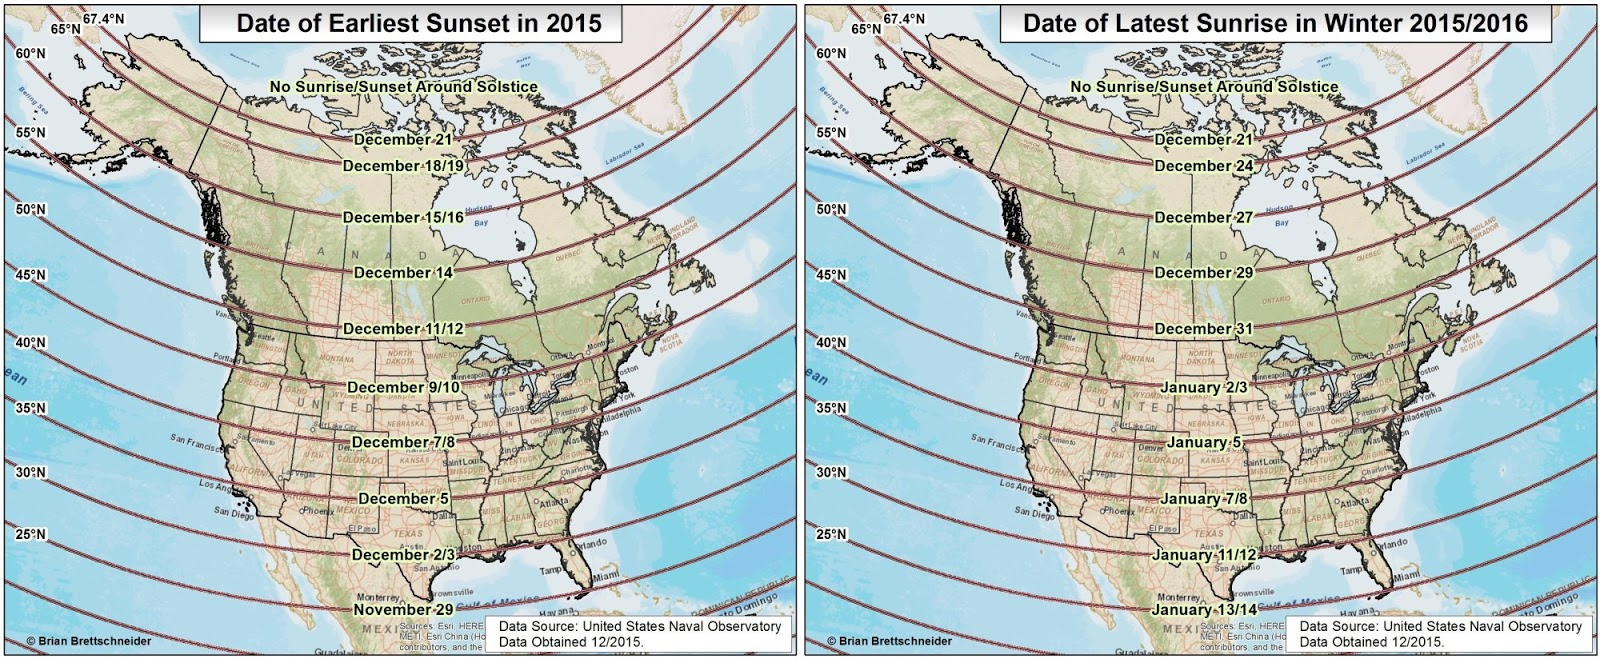 Dates for earliest sunset and latest sunrise in North America this winter